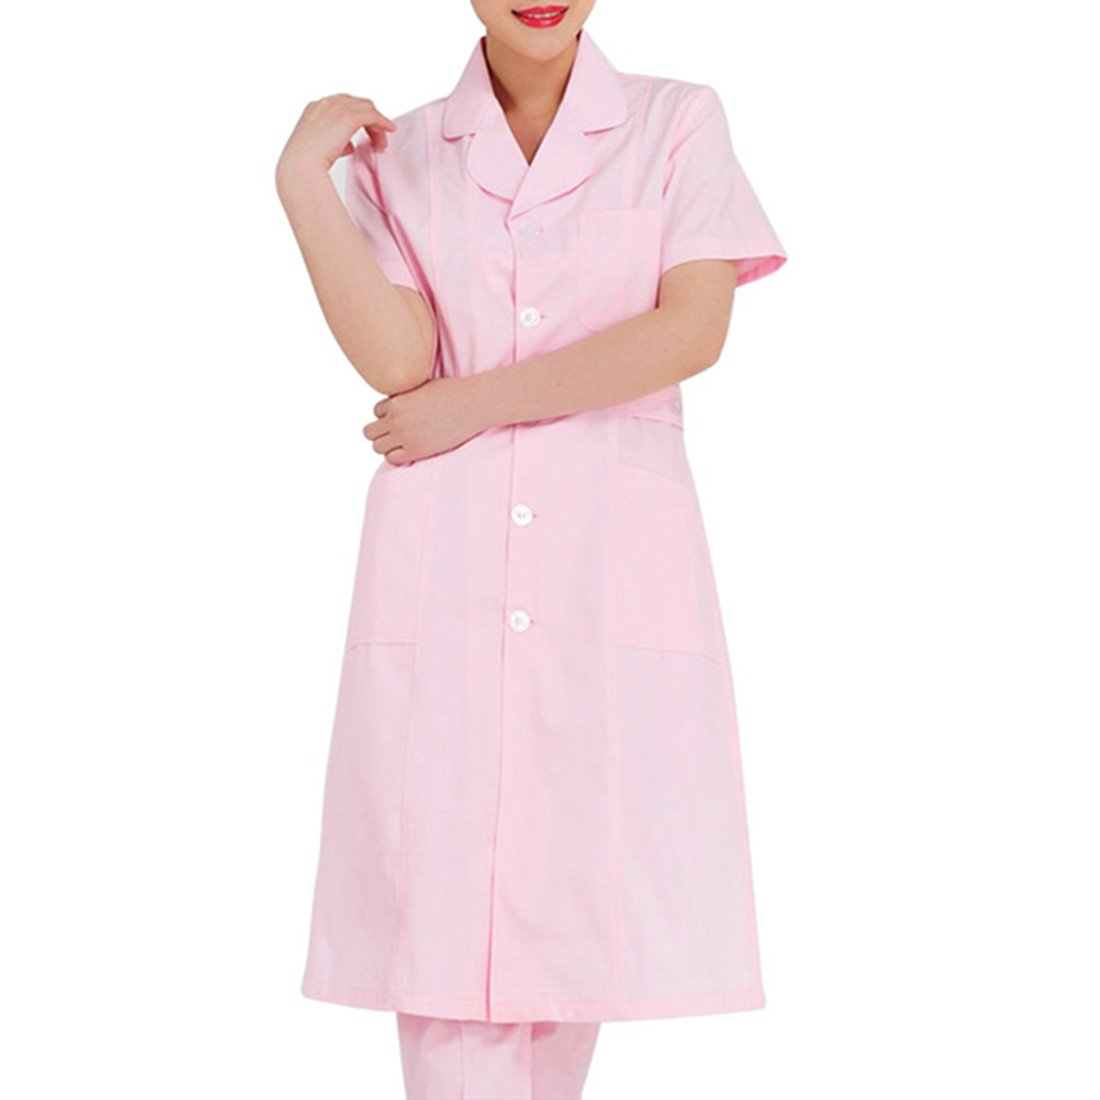 MedicalUniforms Summer Pink Short Sleeve Medical Science Lab Coats Uniform Chemistry Jackets For Women